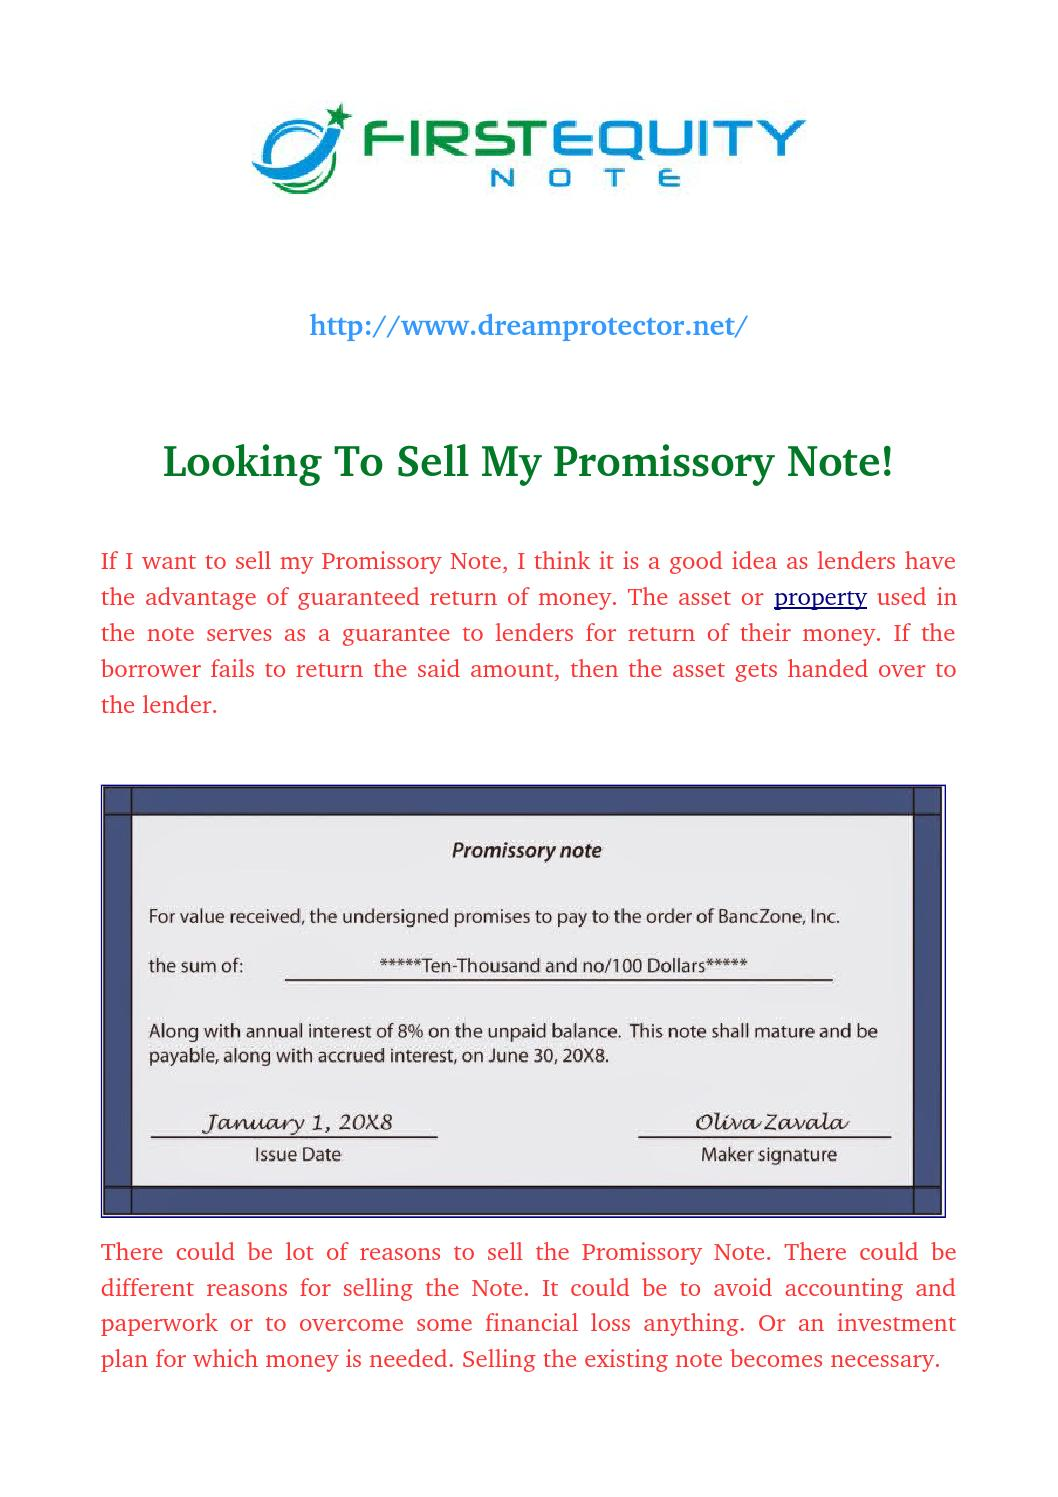 selling a promissory note